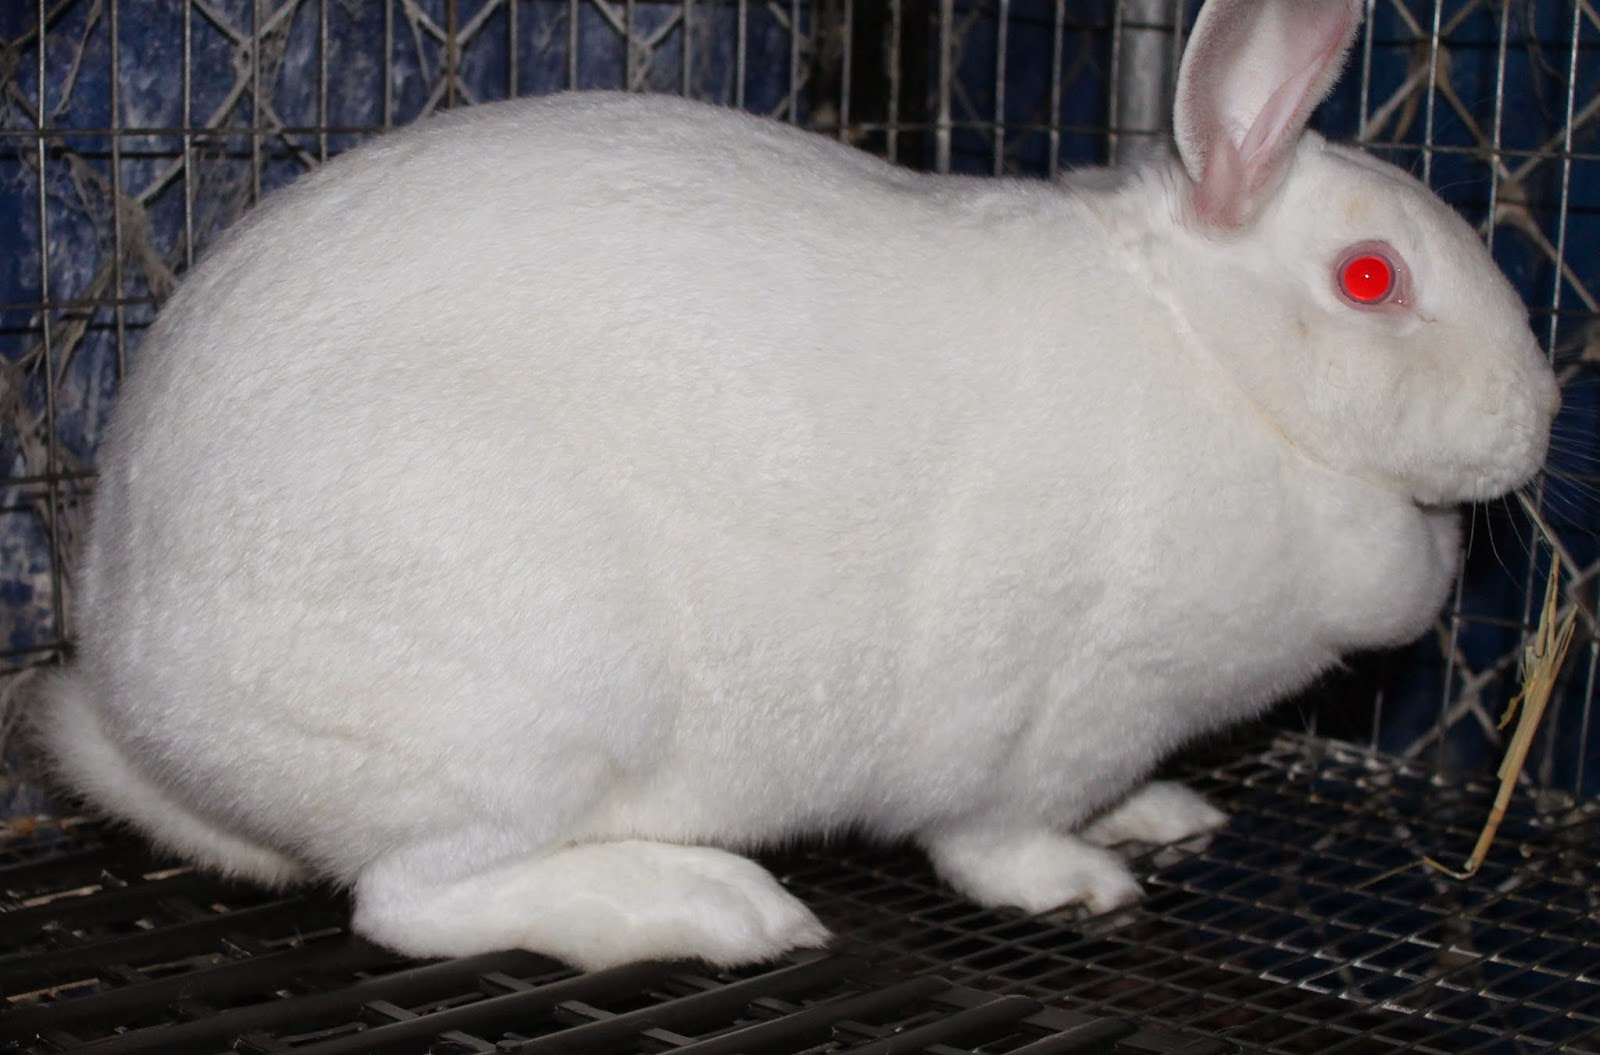 How long does the pregnant rabbit go. How to determine whether a rabbit is pregnant